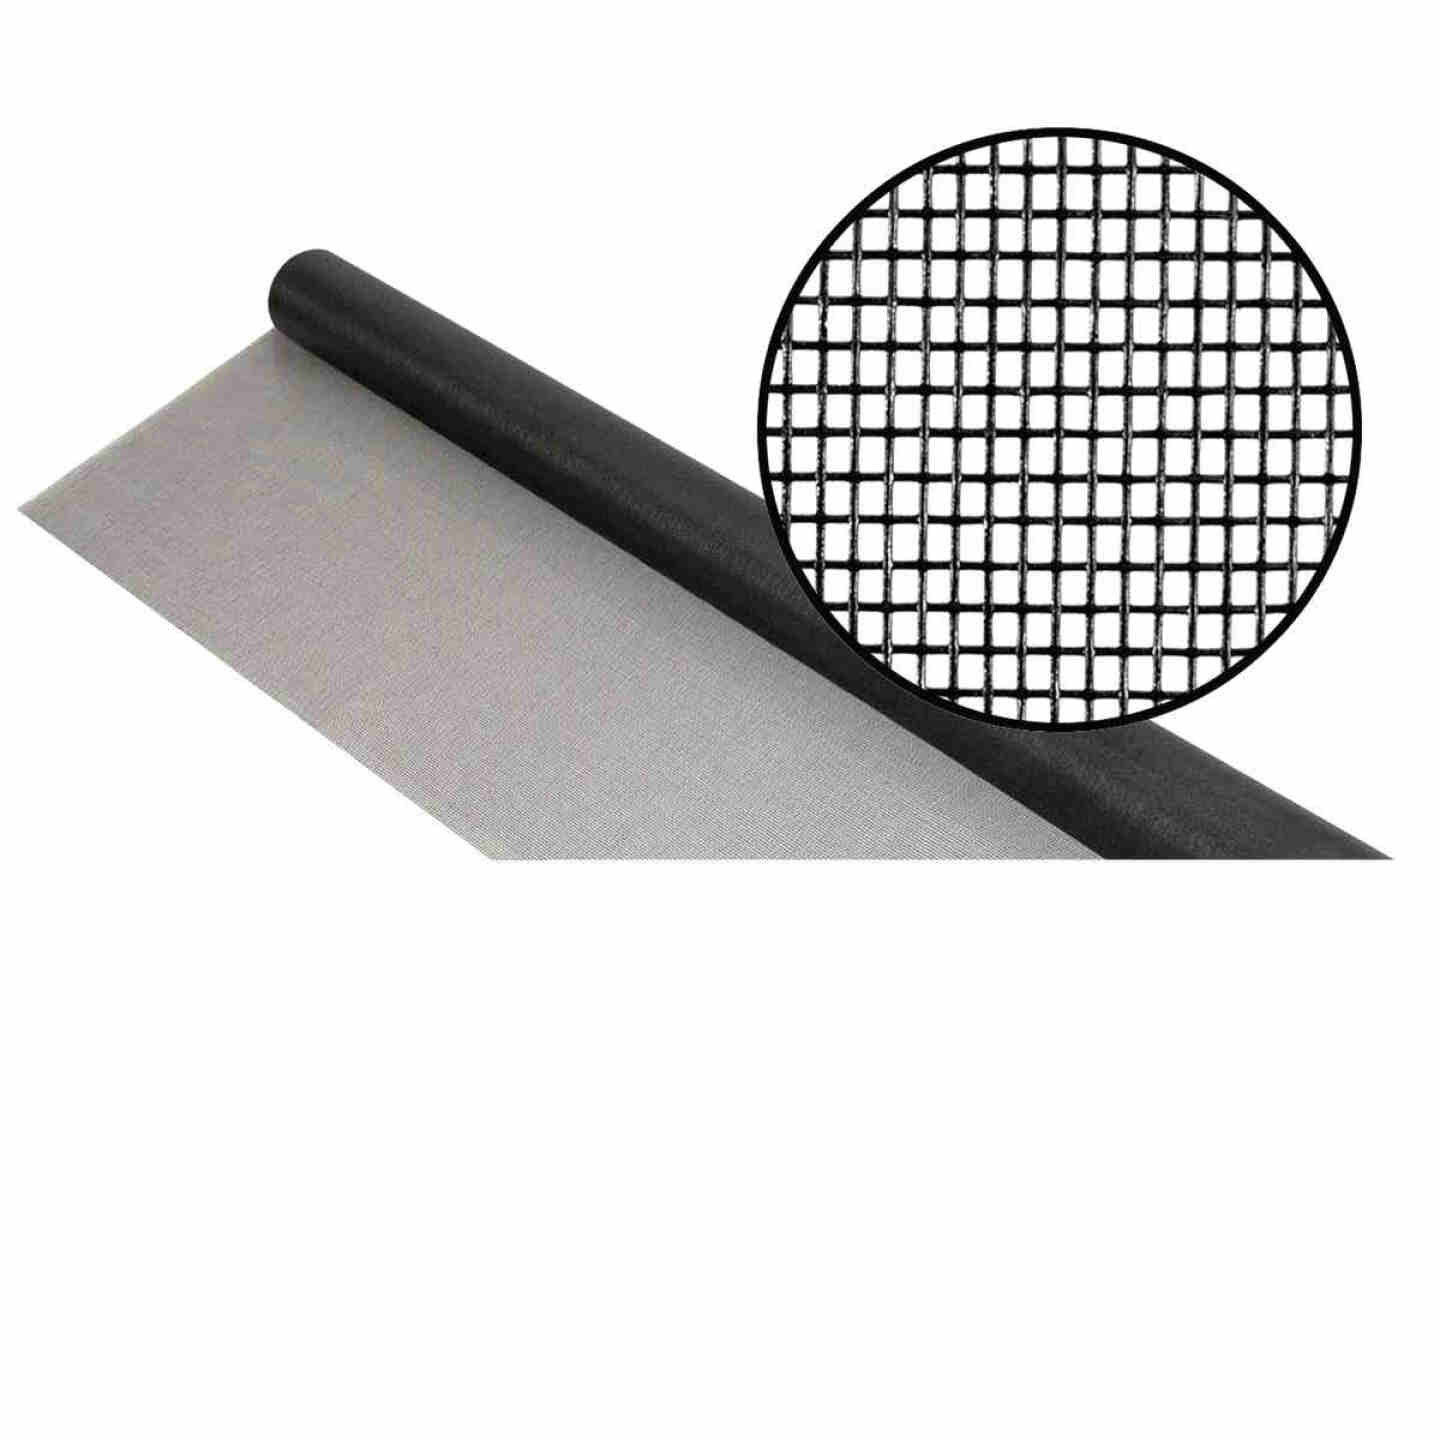 Phifer 24 In. x 100 Ft. Charcoal Fiberglass Mesh Screen Cloth Image 1